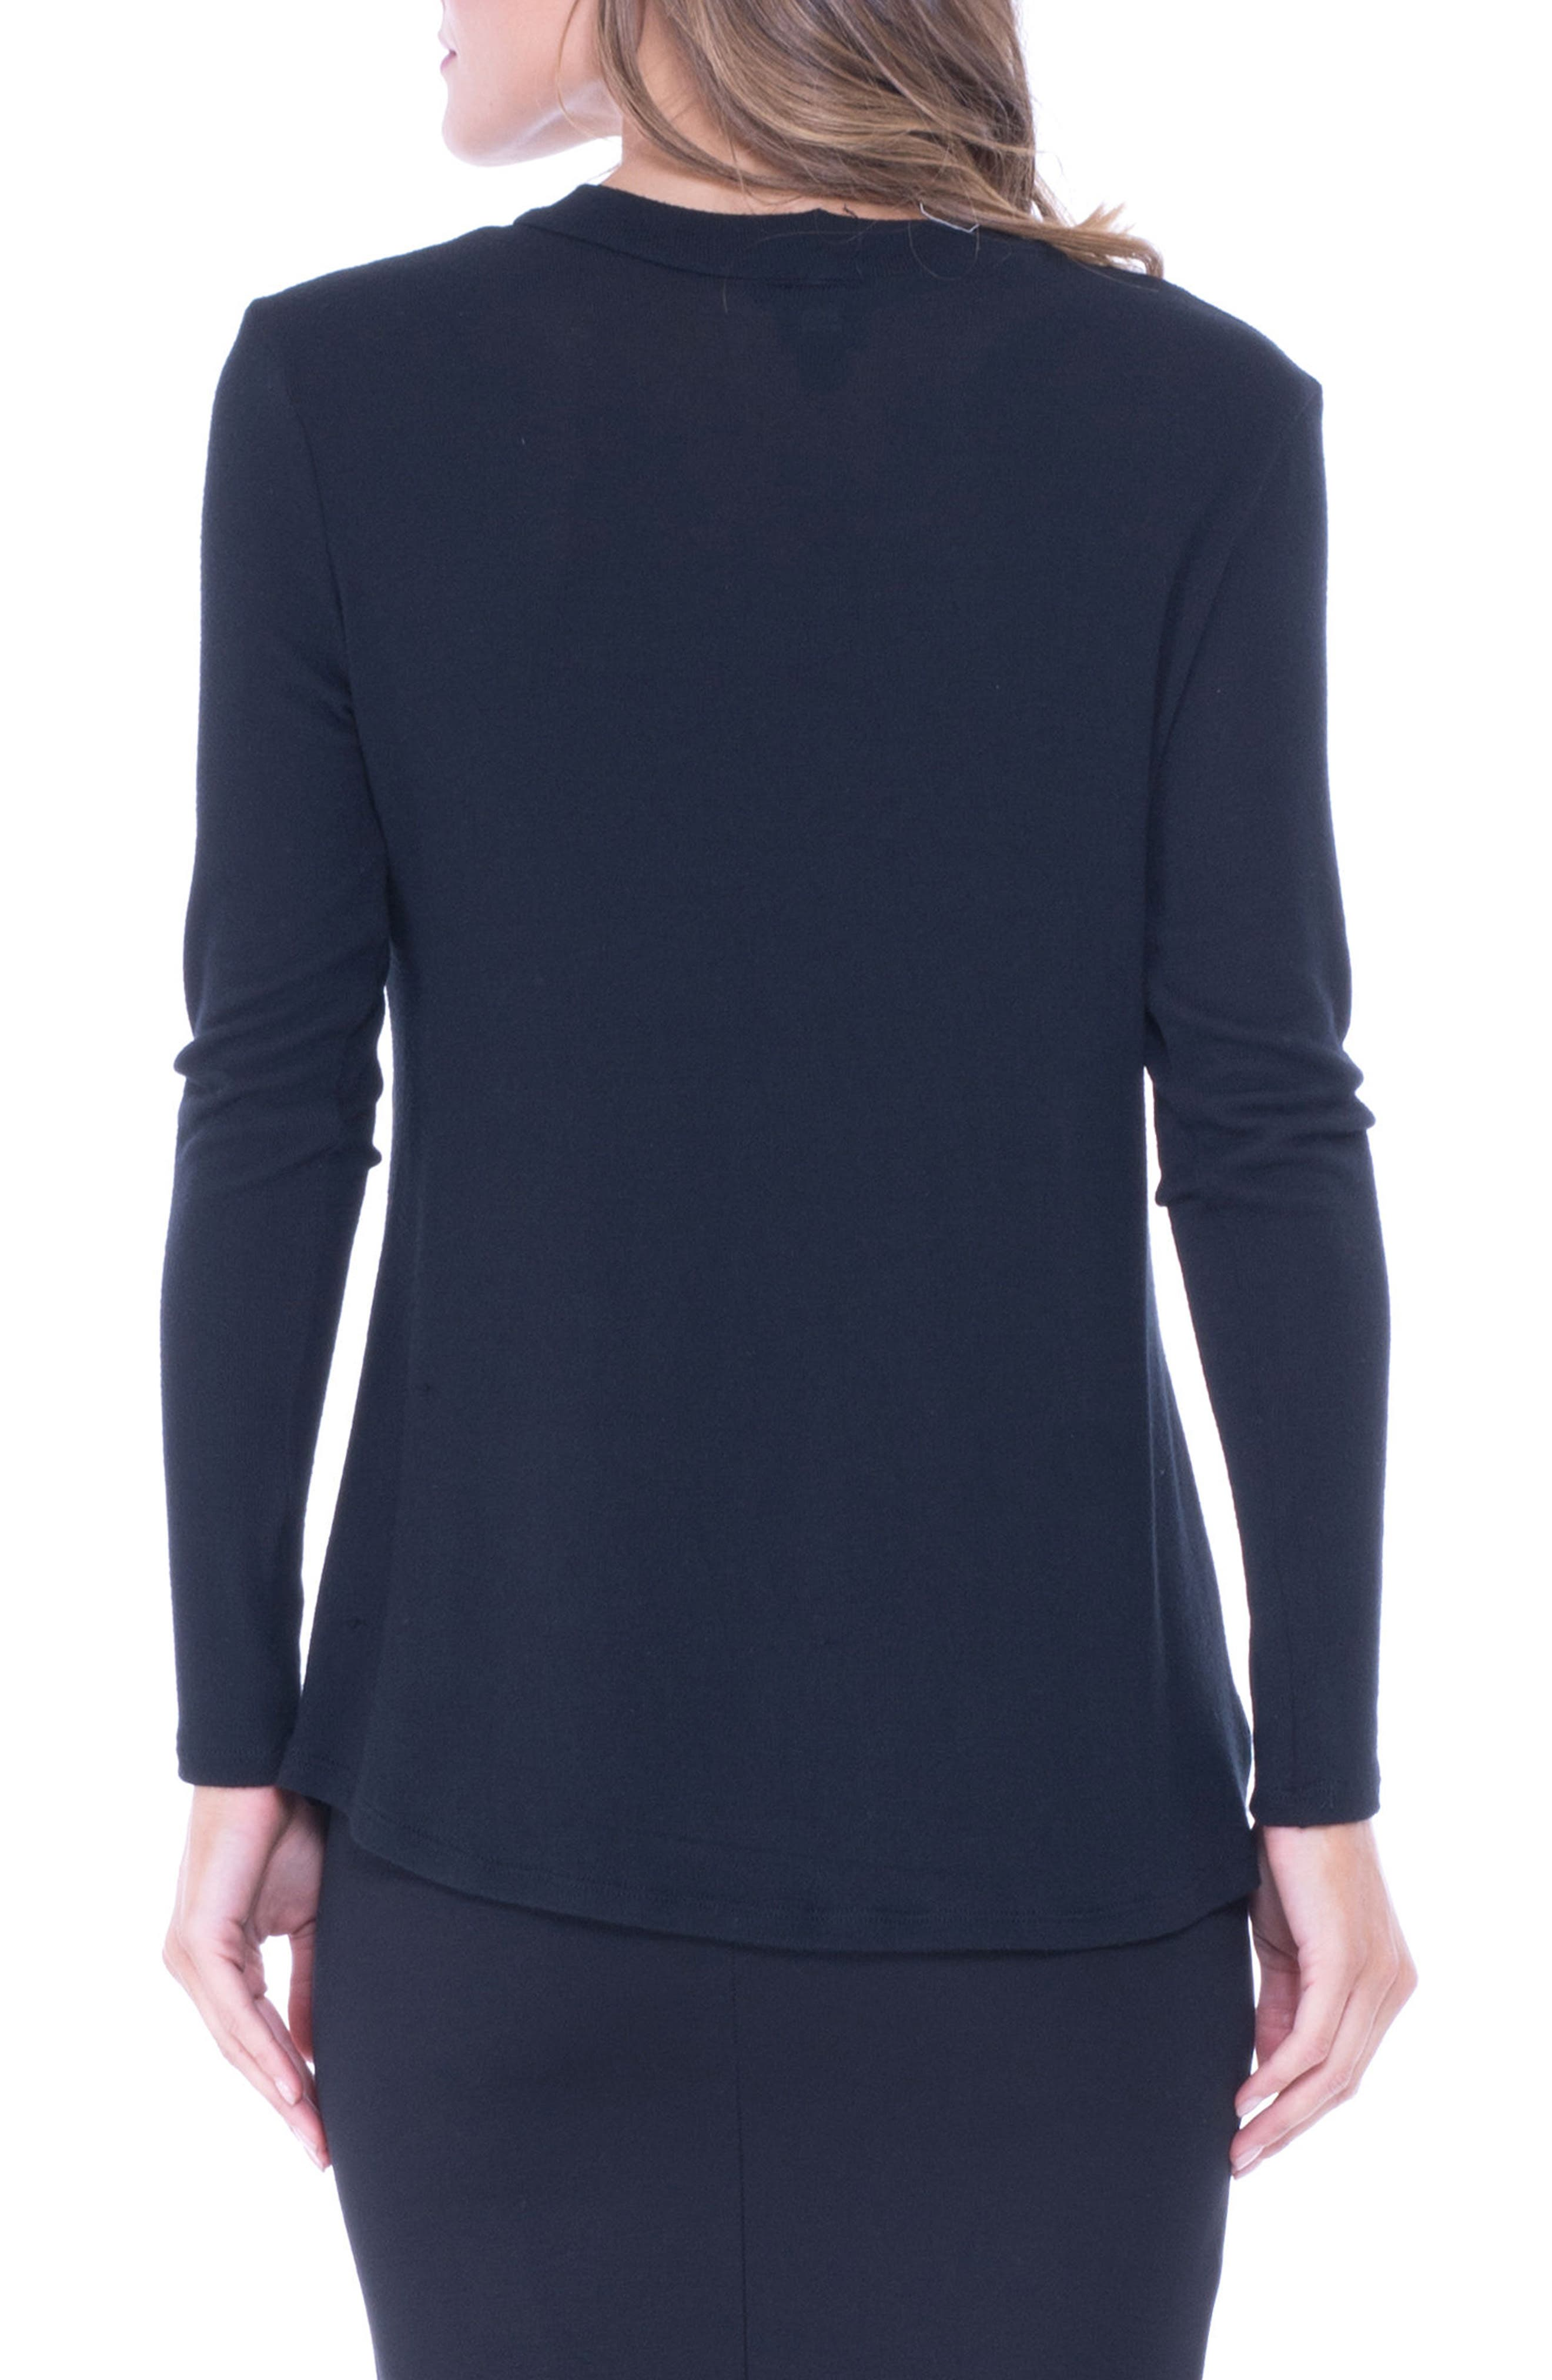 Alternate Image 2  - Olian Faux Leather Trim Maternity Top